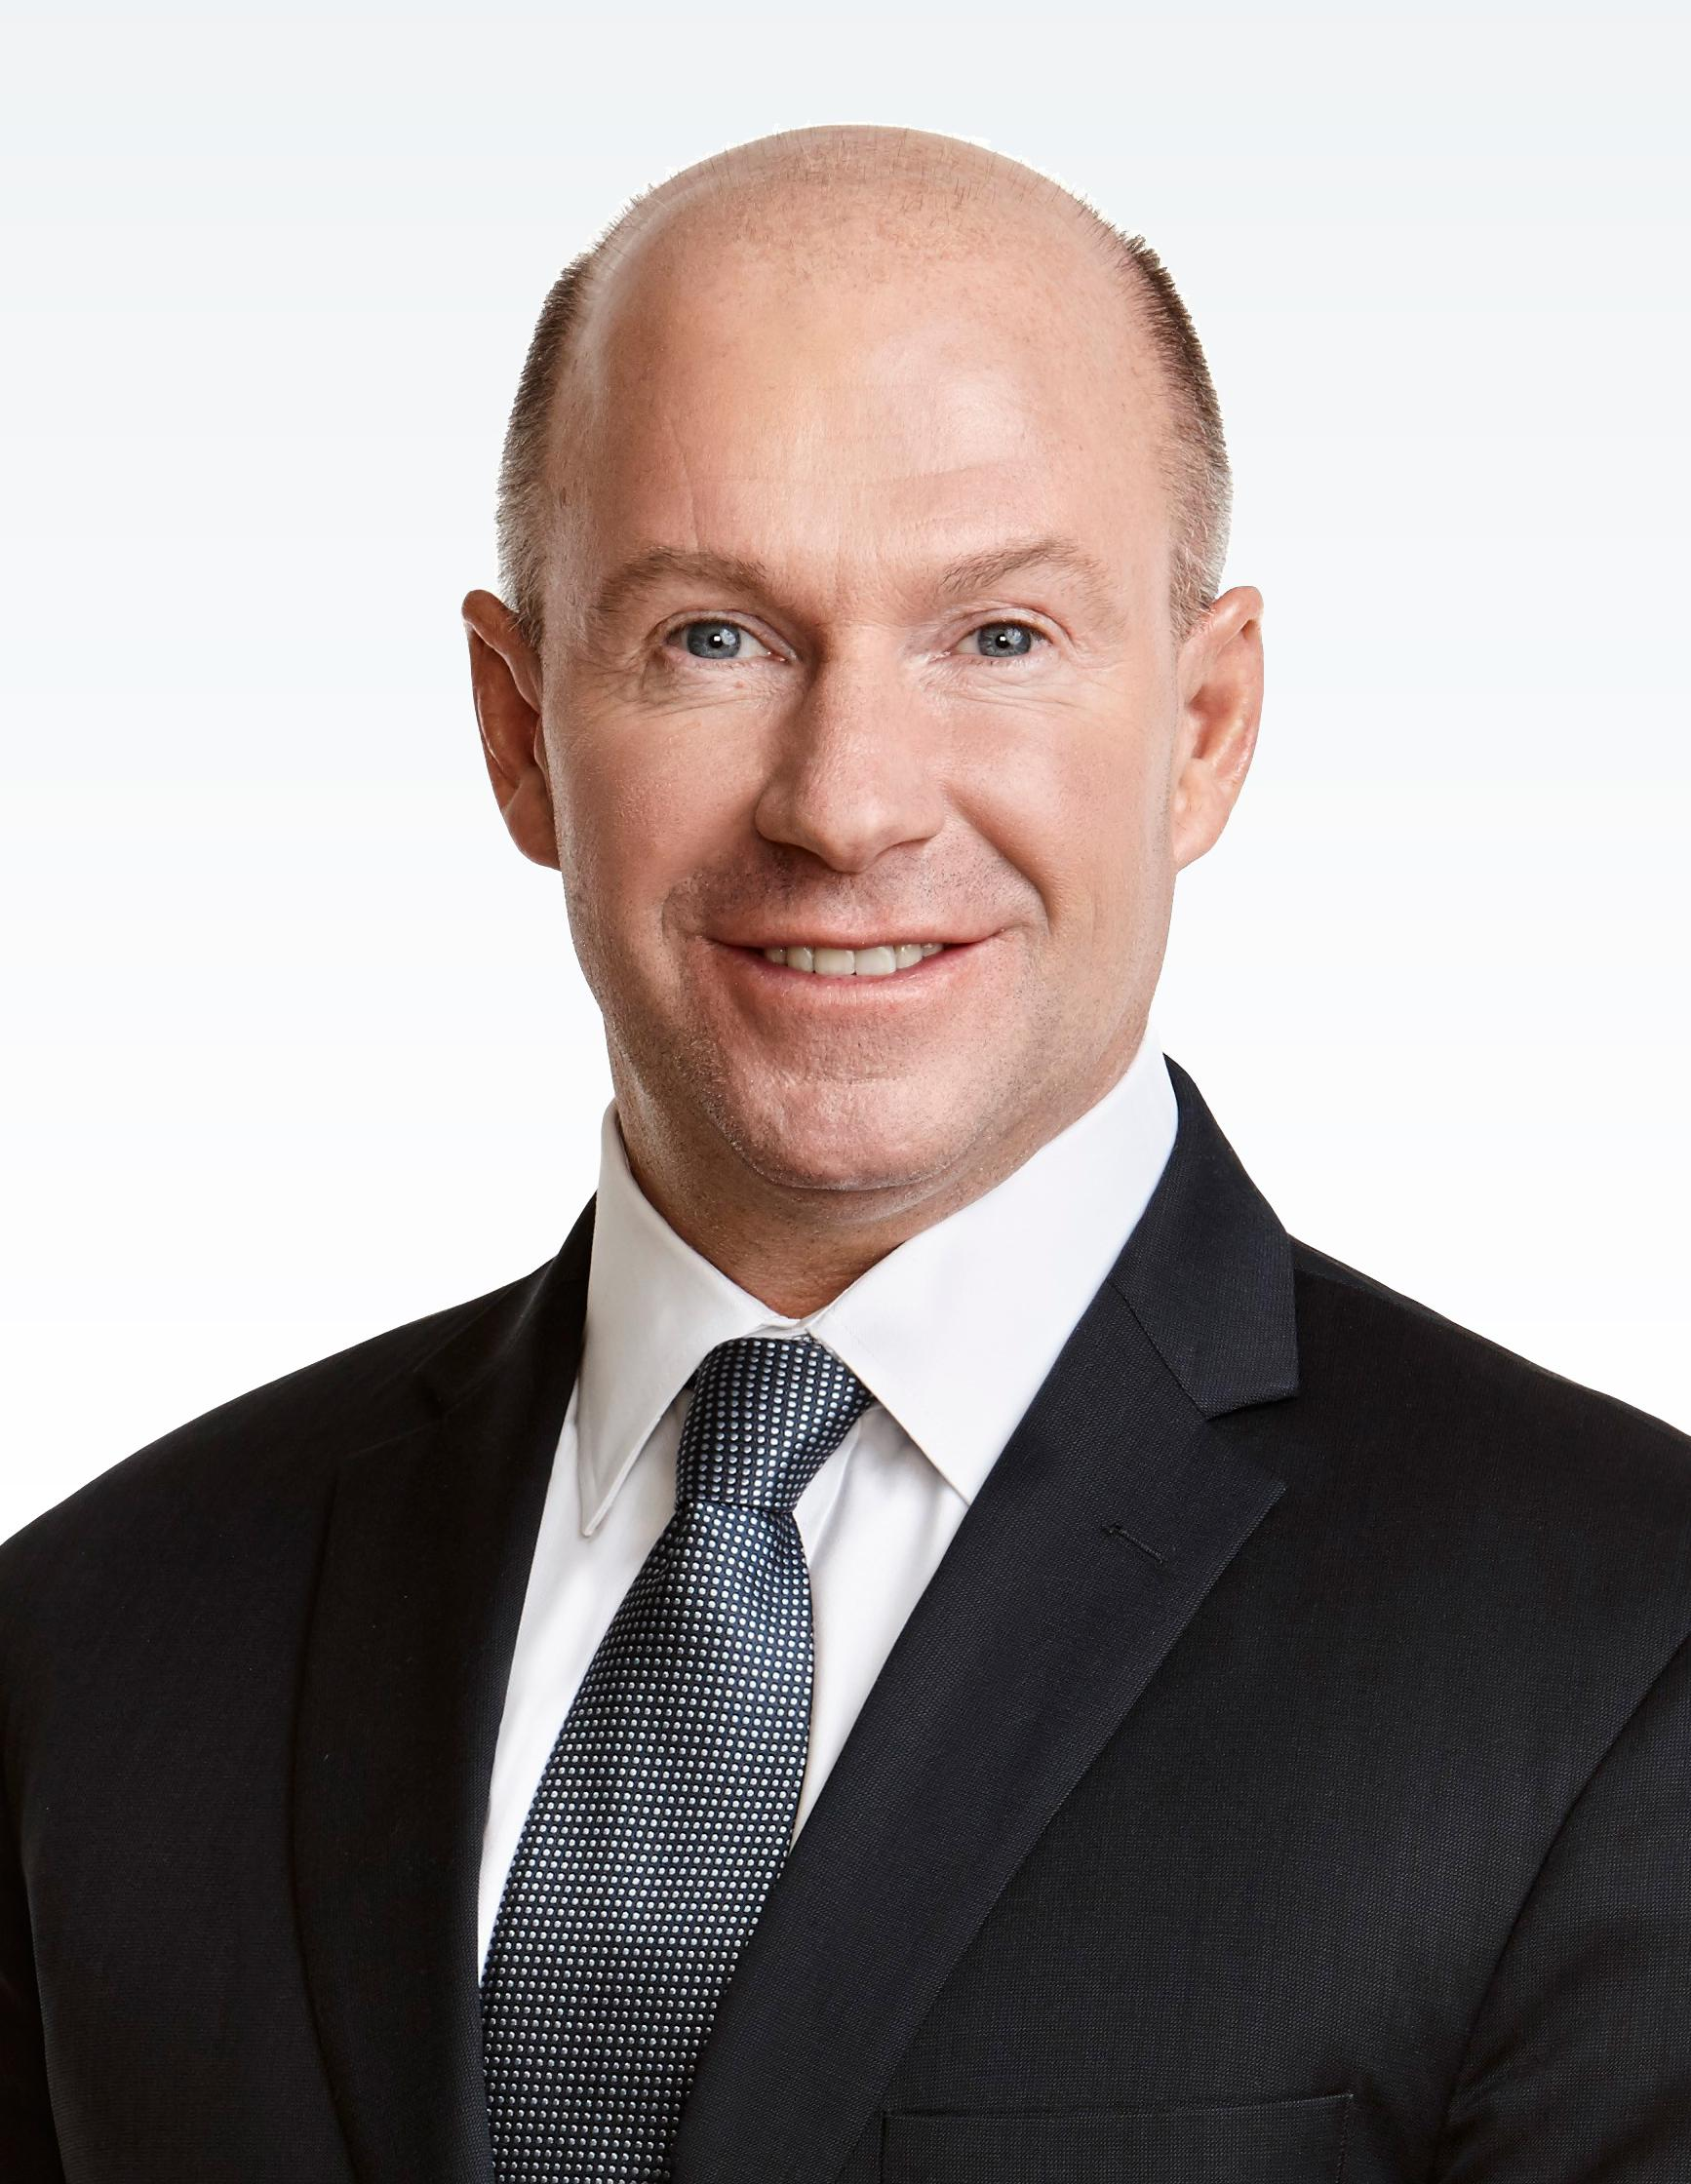 Alain M. Bellemare's photo - President & CEO of Bombardier